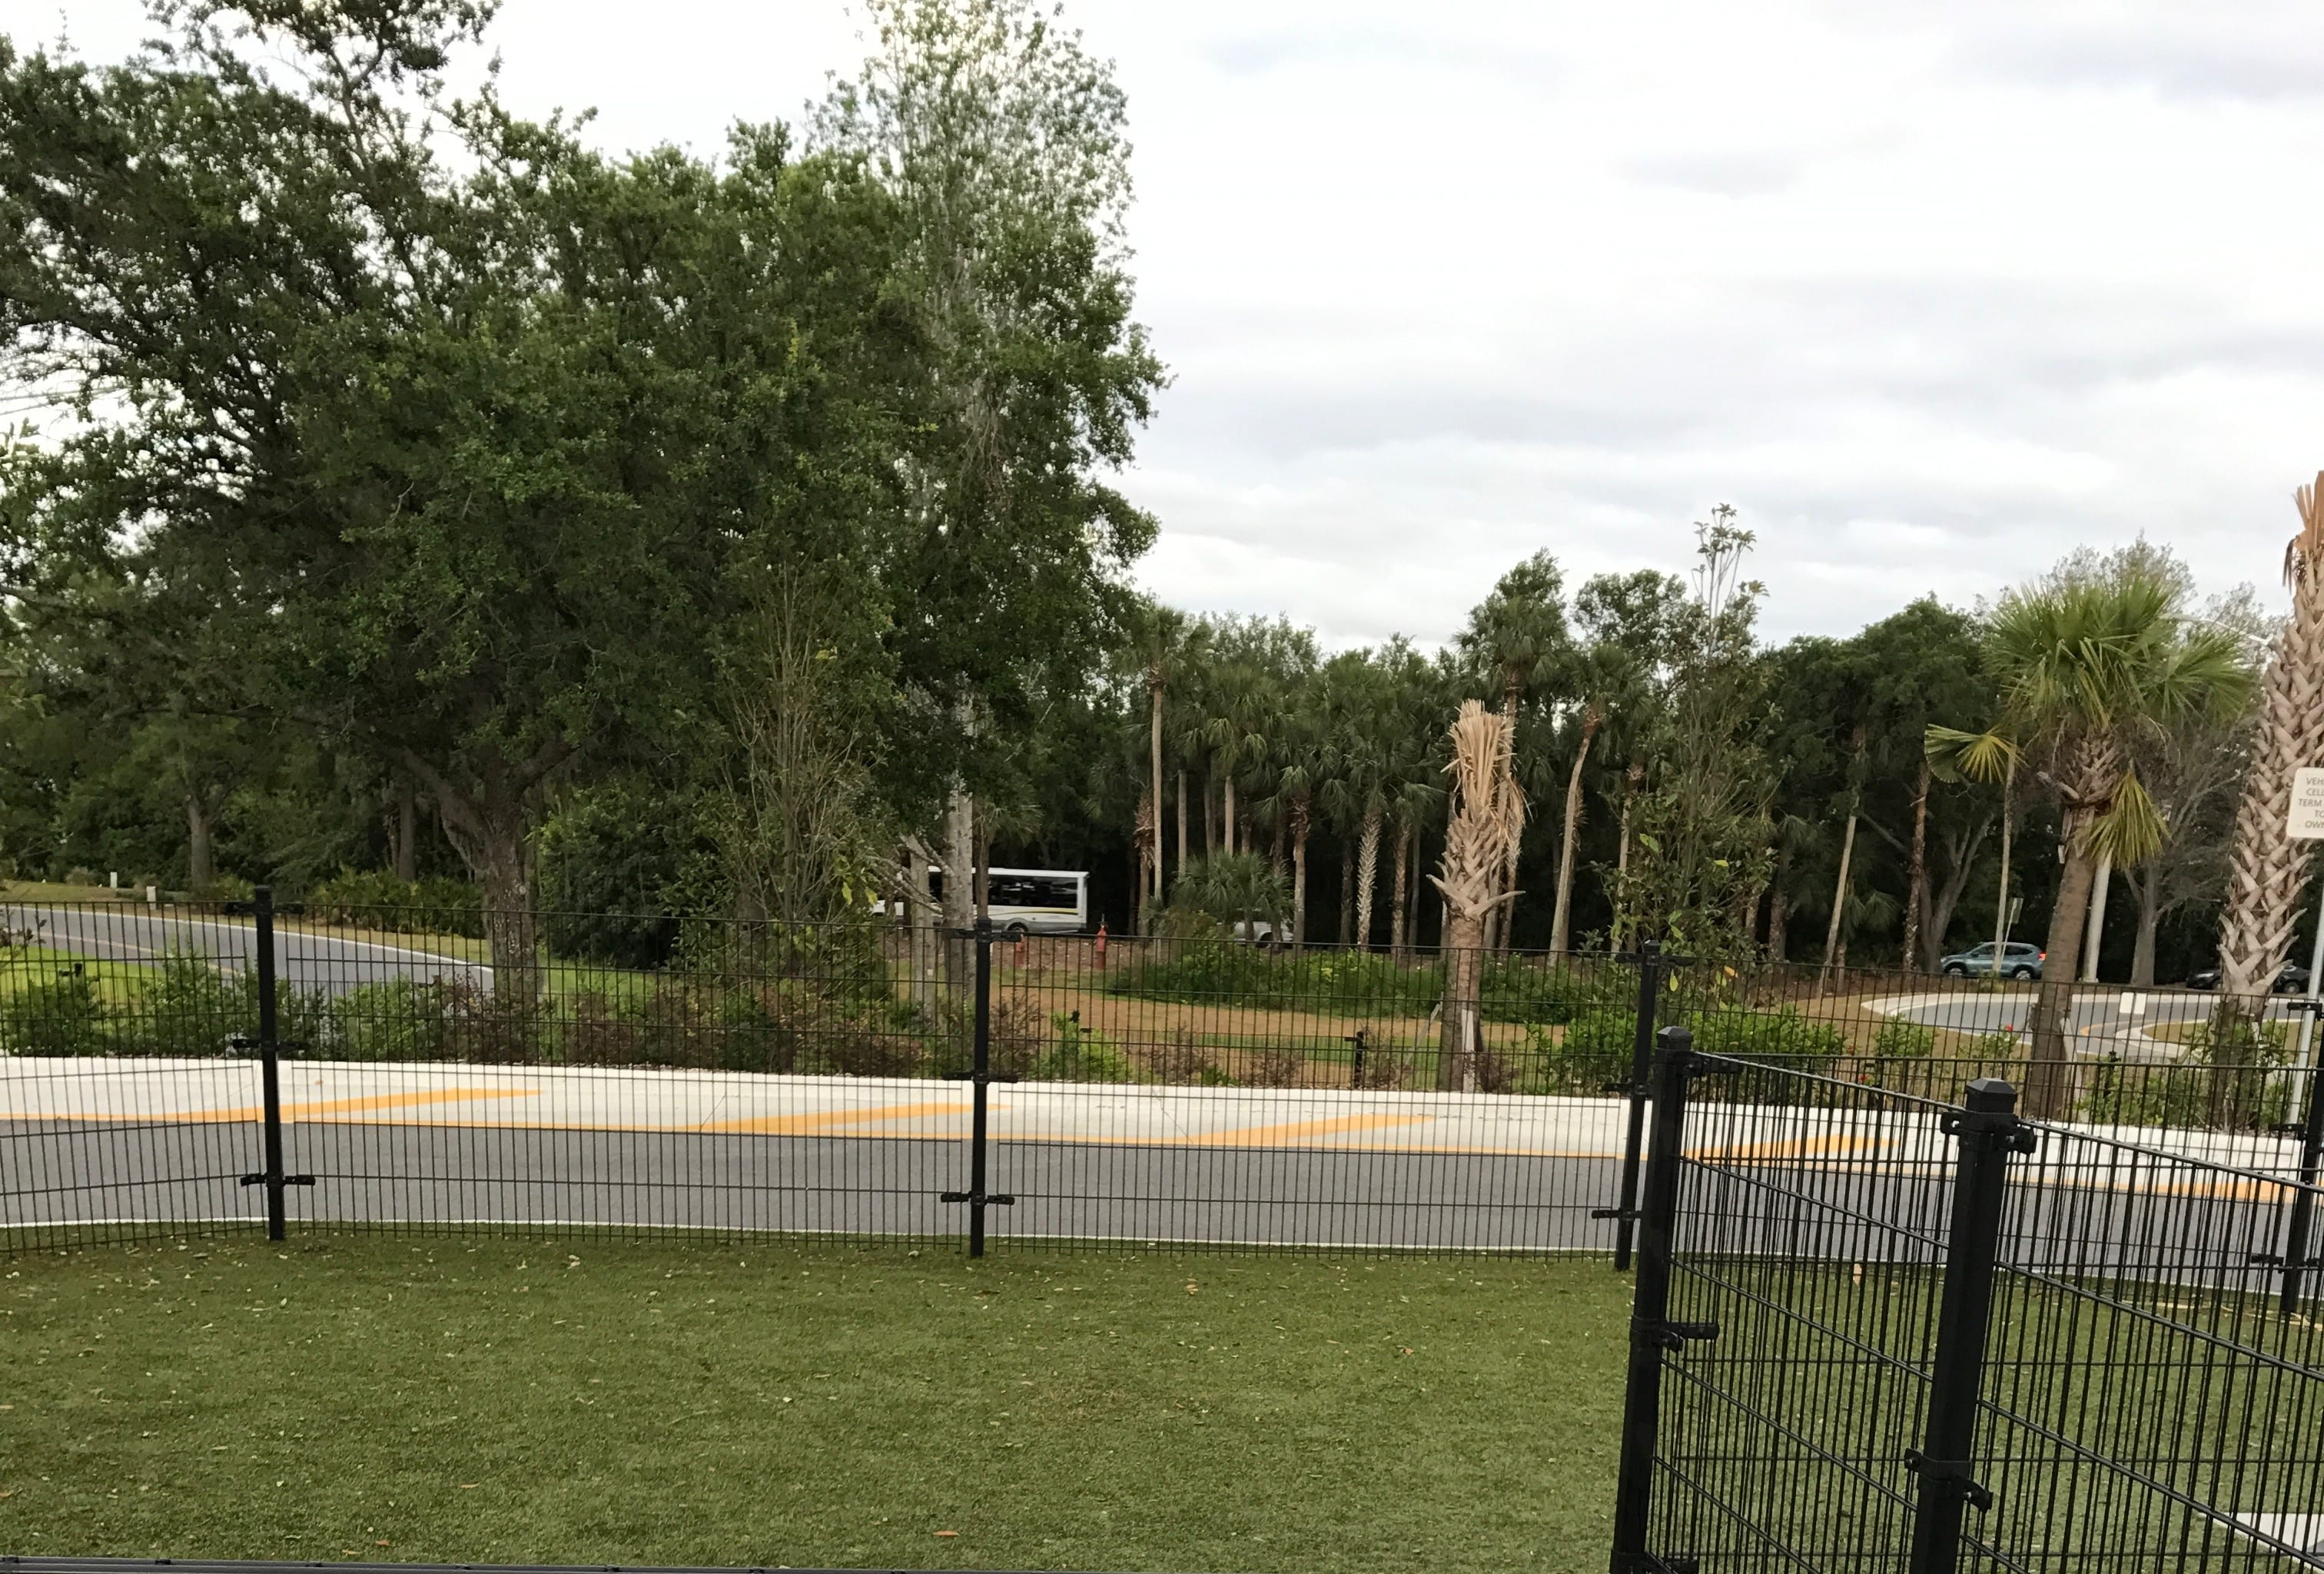 Orlando International Airport Dog Park with K9Grass